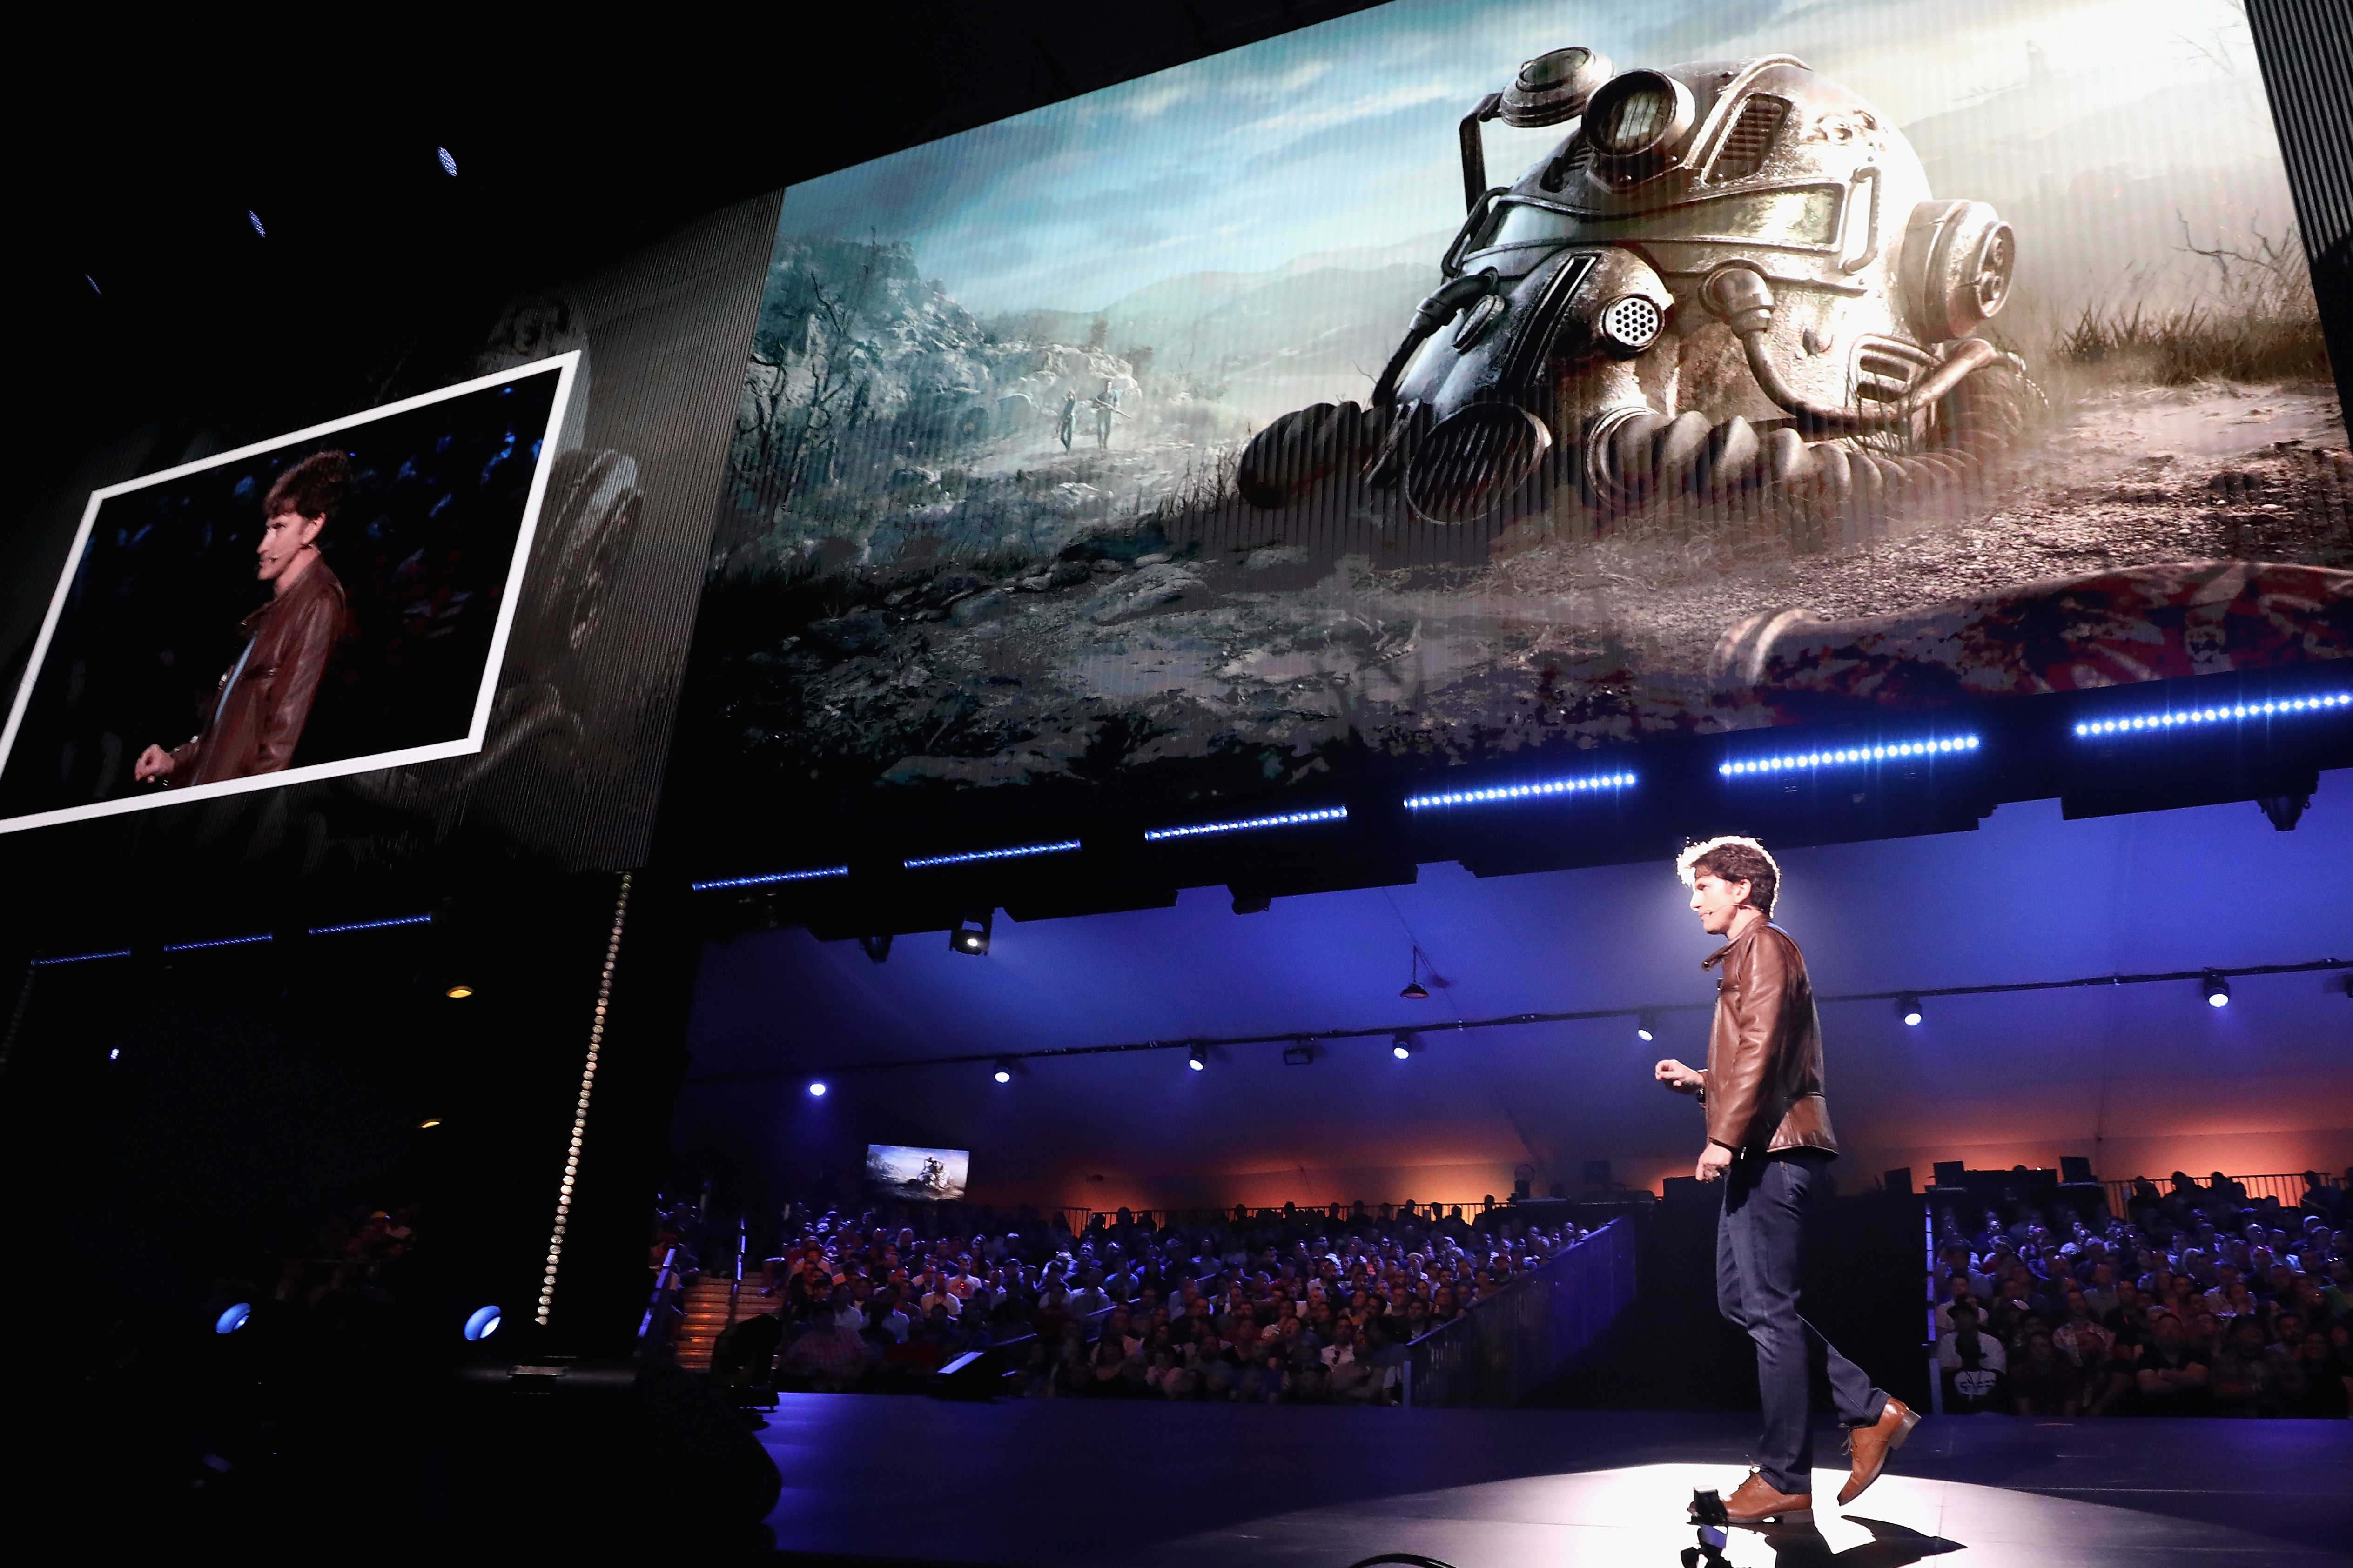 Video Game Maker Bethesda Announces New Products At E3 In Los Angeles